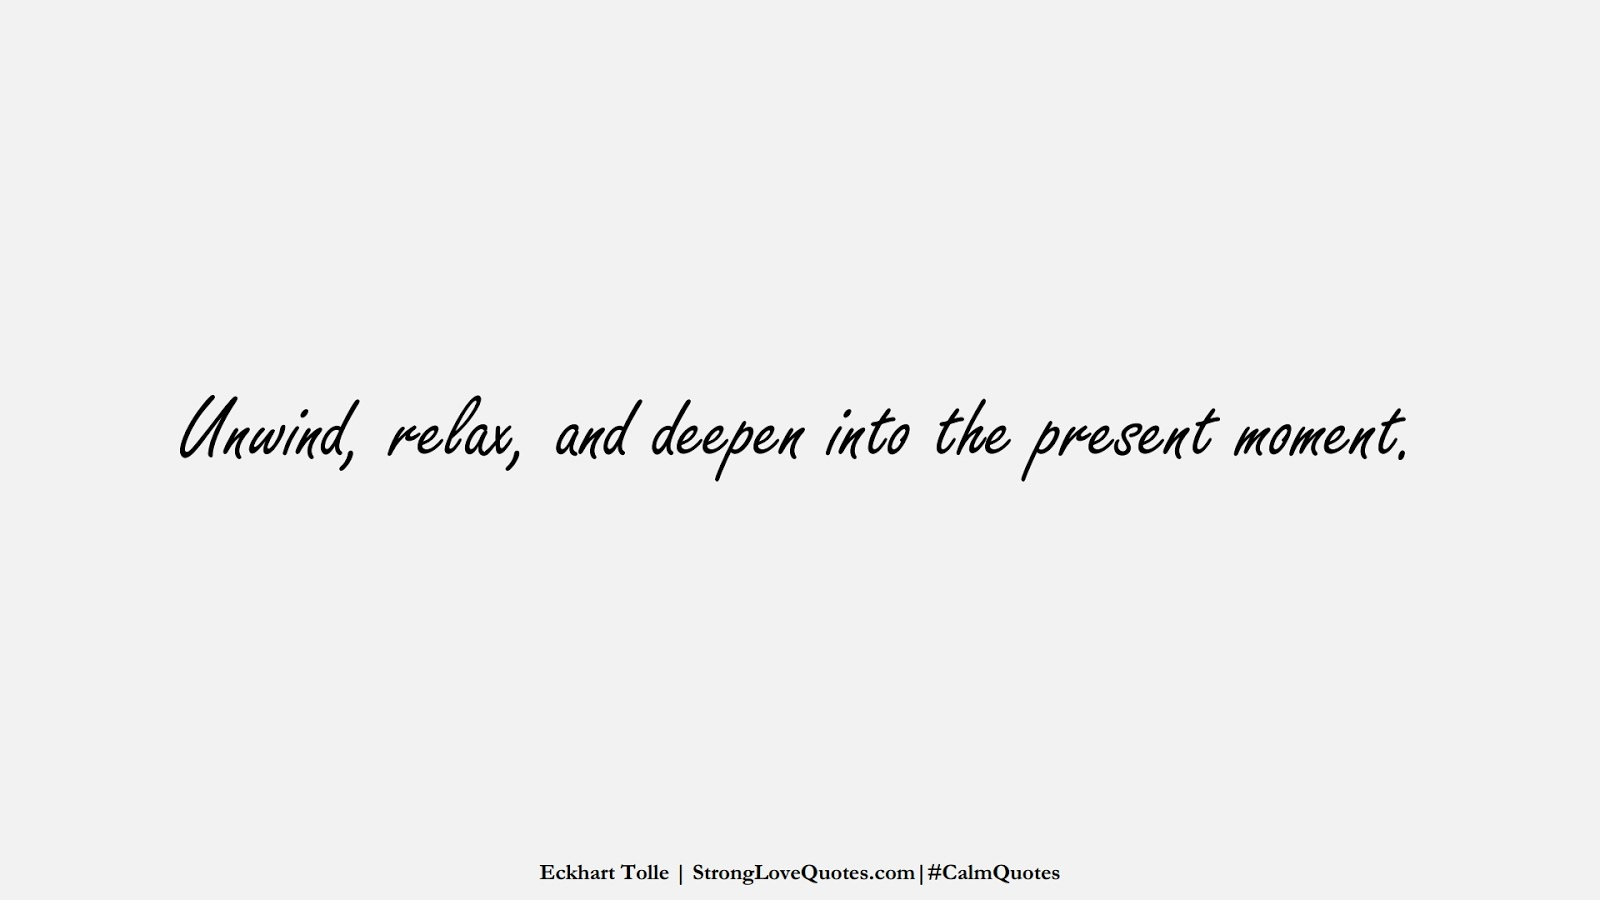 Unwind, relax, and deepen into the present moment. (Eckhart Tolle);  #CalmQuotes